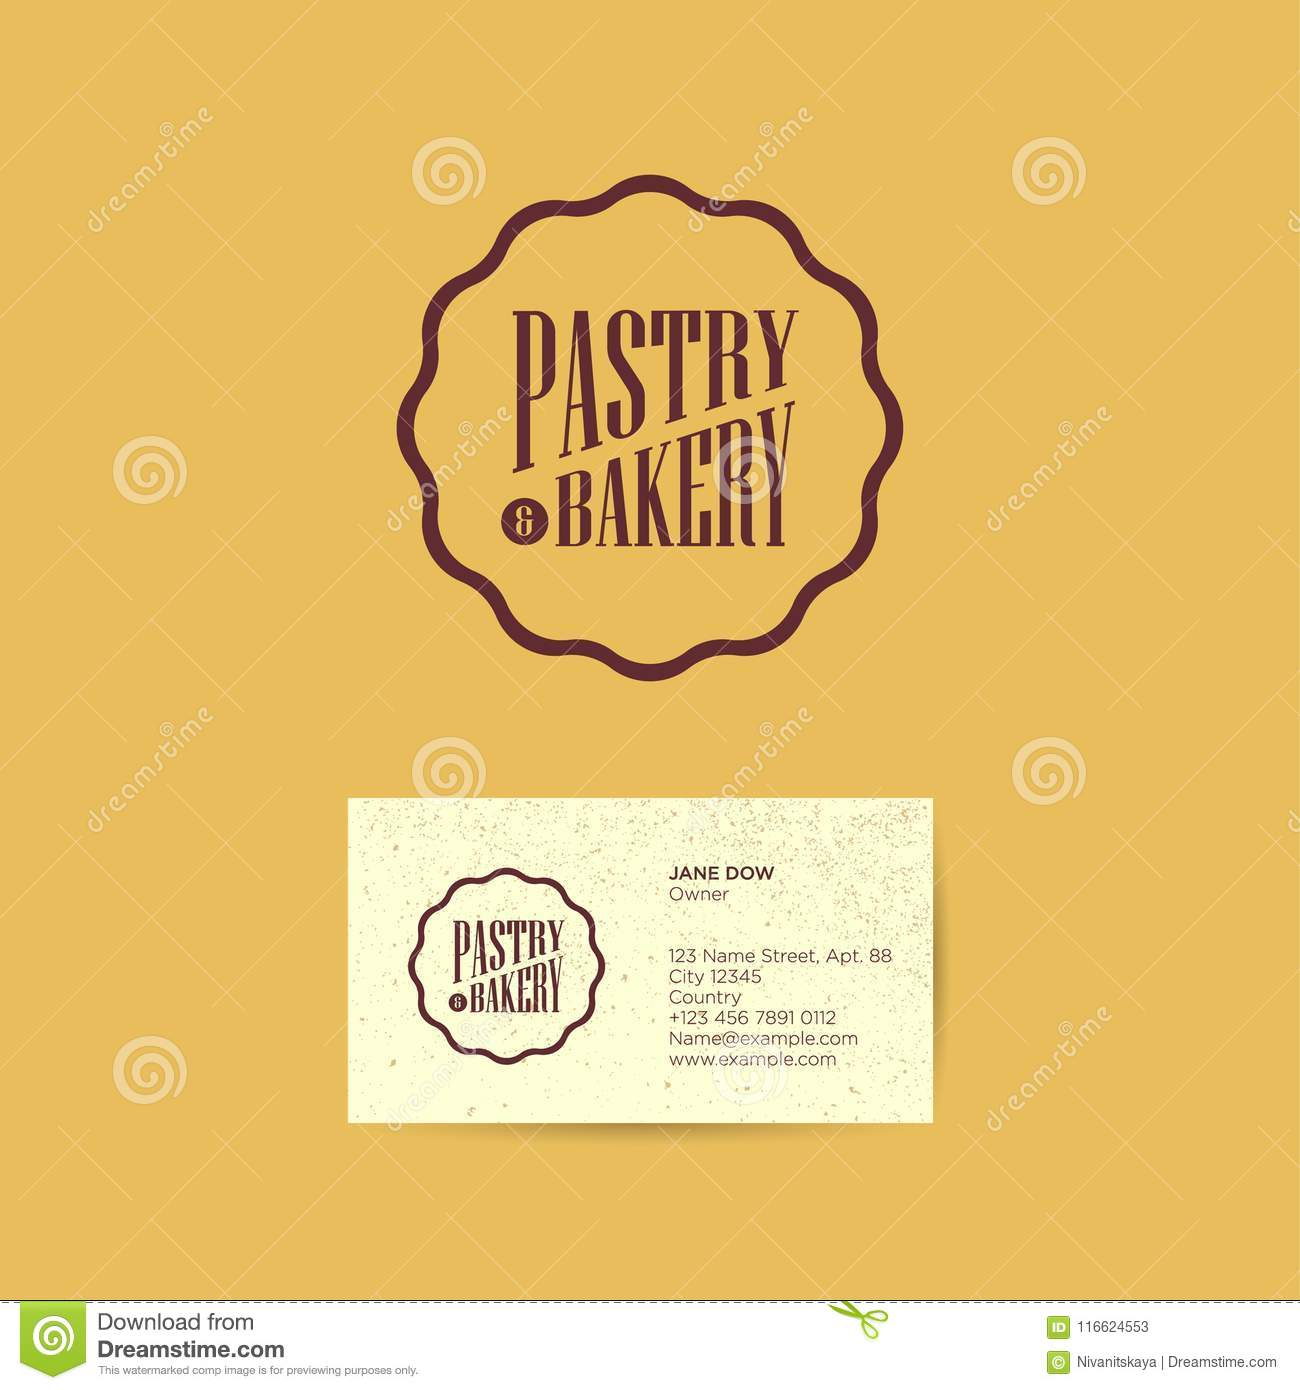 Pastry and bakery logo logo for bakery and cafe label from sweet pastry and cakes brown emblem vintage style